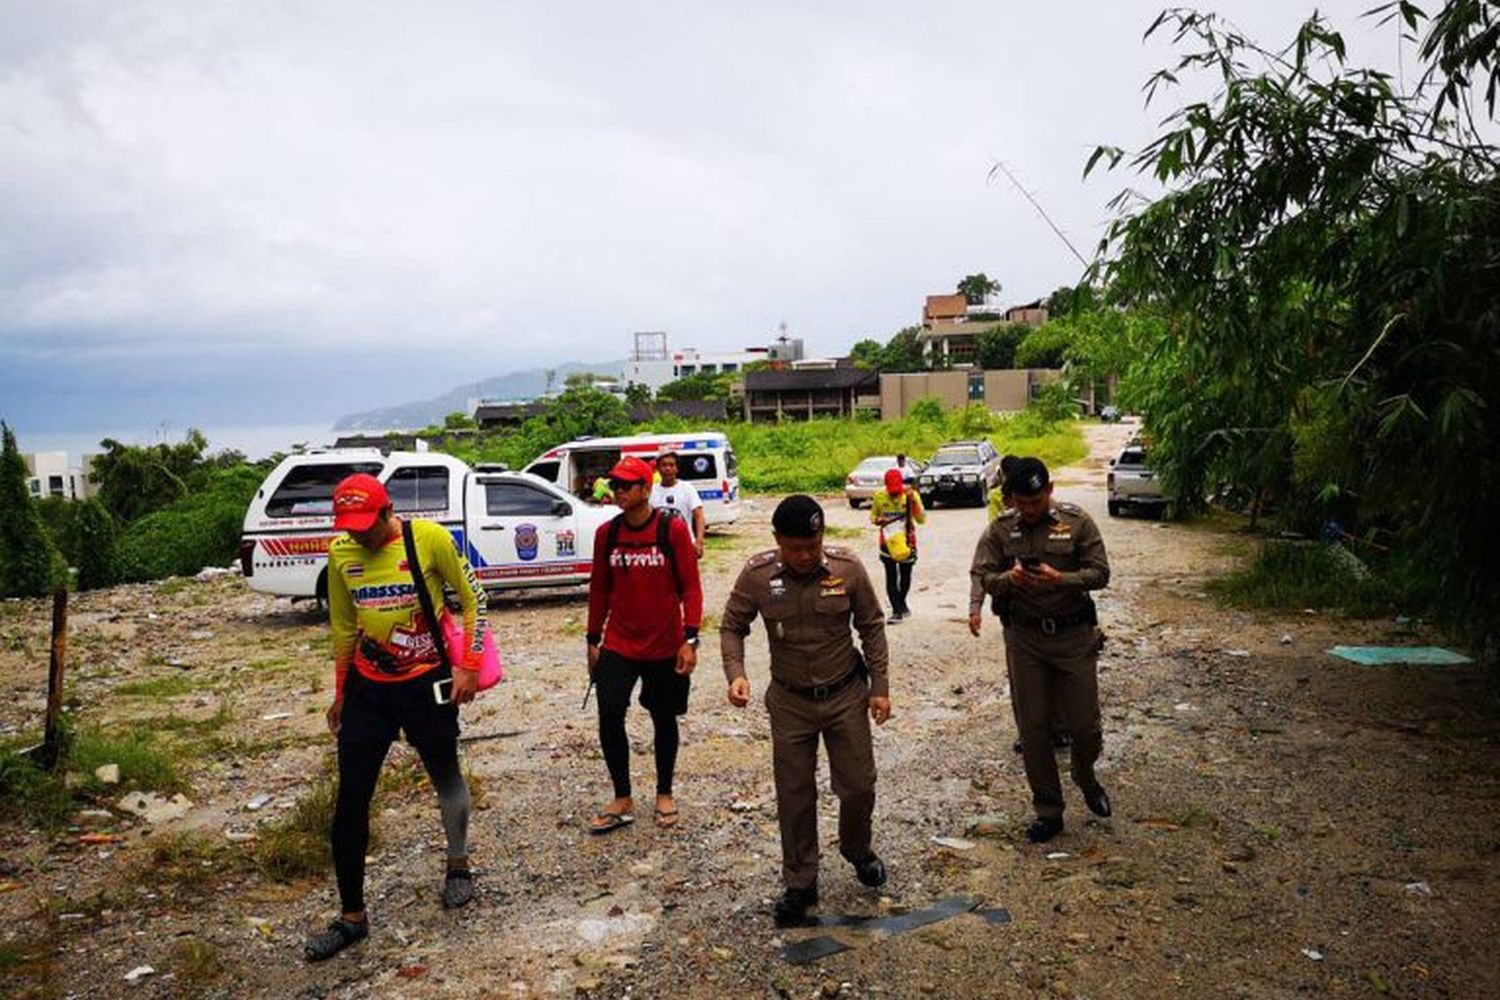 Police and workers check the area for two missing Philippine tourists at Freedom Beach, Phuket, on Friday. A body believed to be one of them was found in the area. (Photo supplied by Achadtaya Chuennirun)